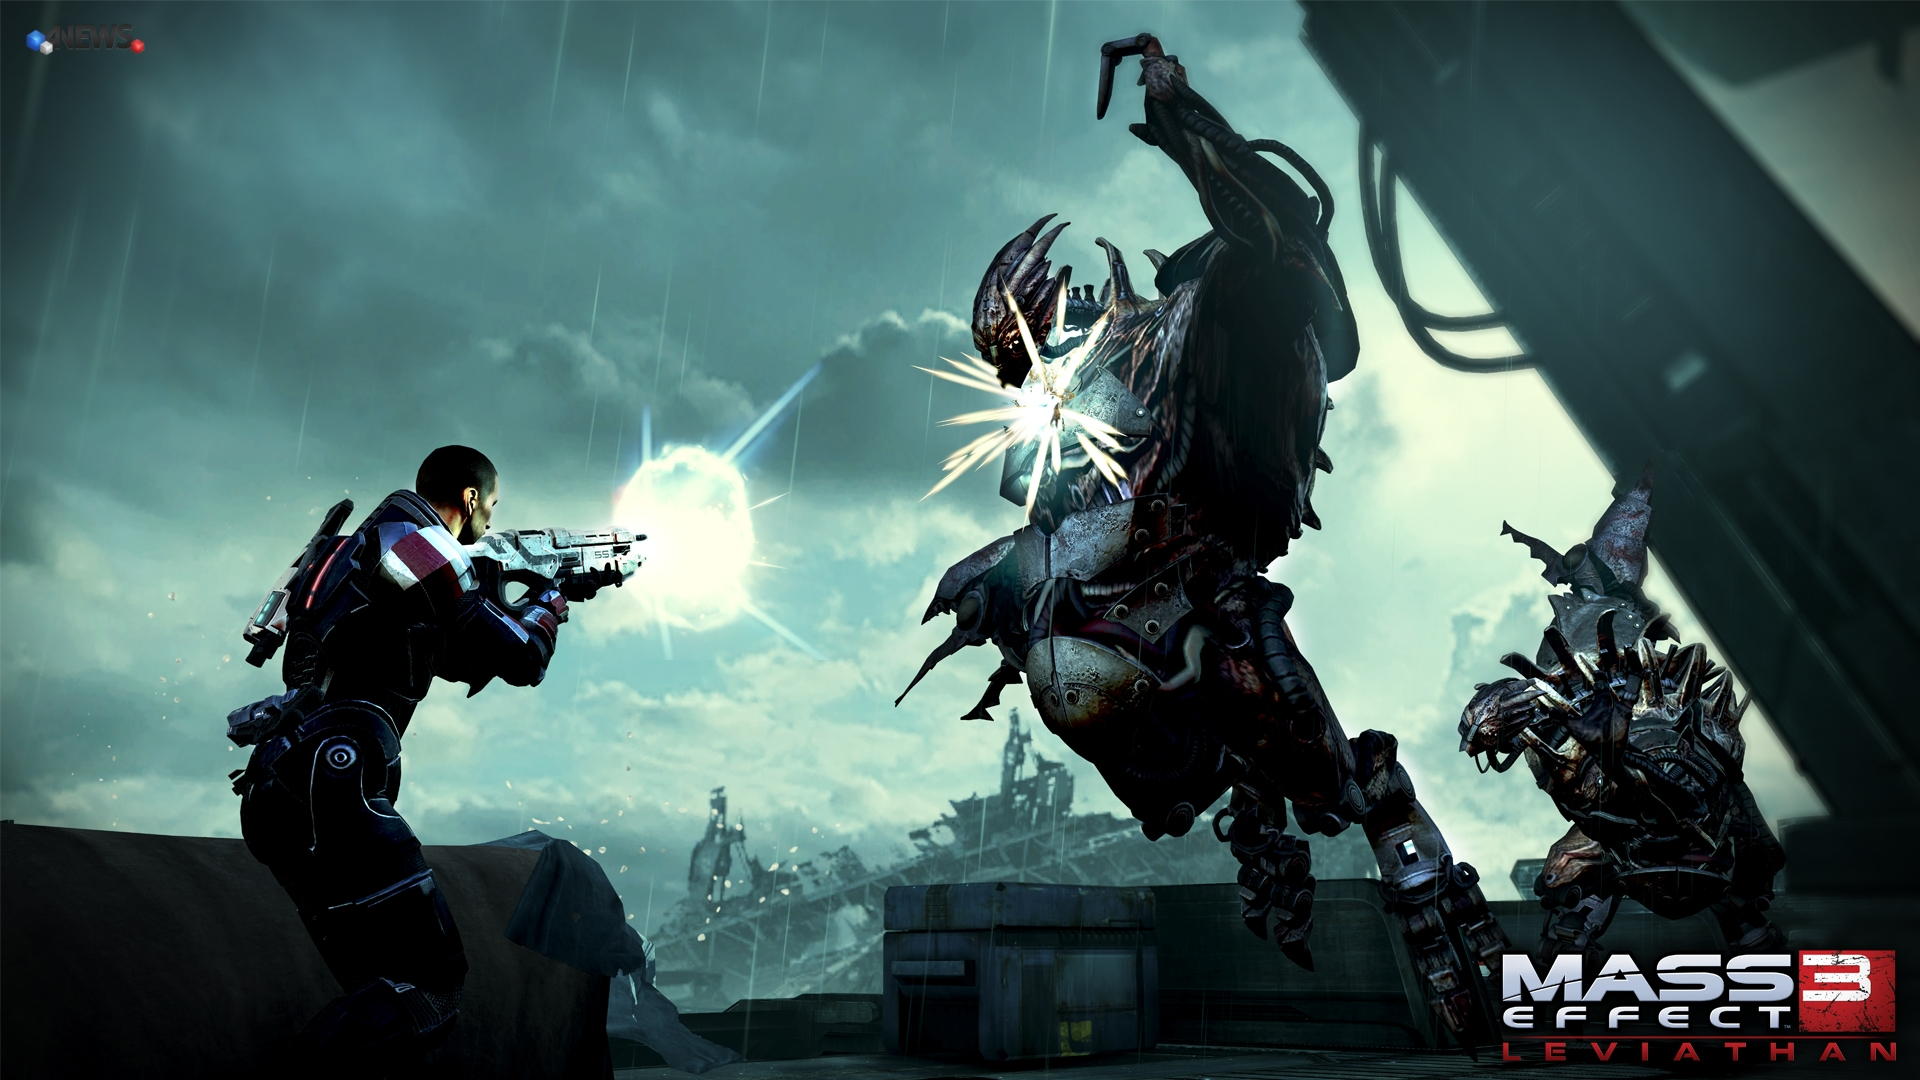 Leviathan Launch 01 - Recensione Leviathan, DLC di Mass Effect 3